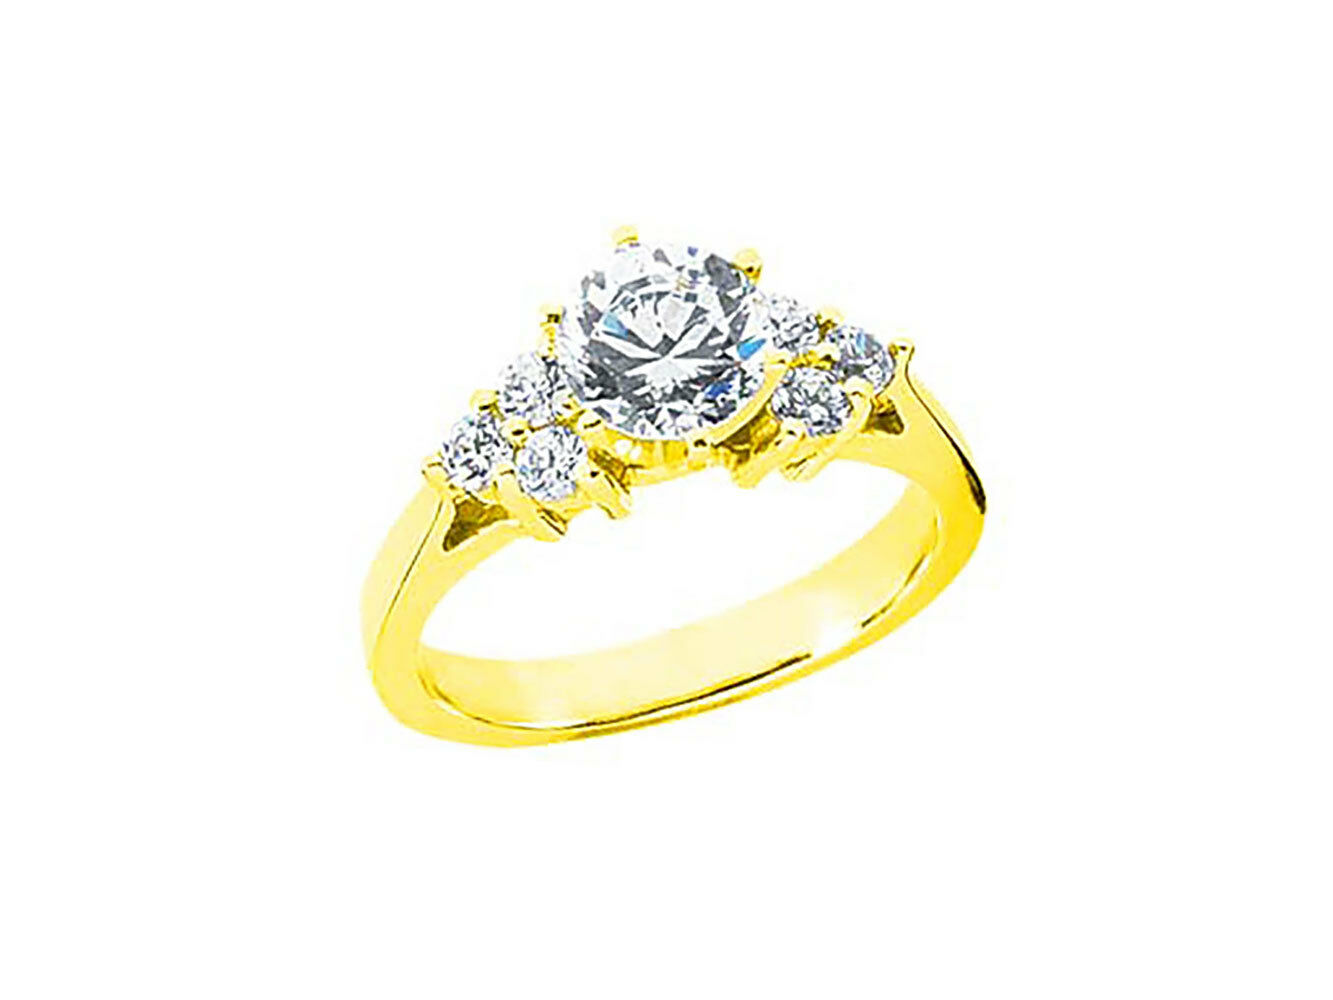 0.90Ct Round Diamond Open Gallery Engagement Ring Solid 10k gold HI SI2